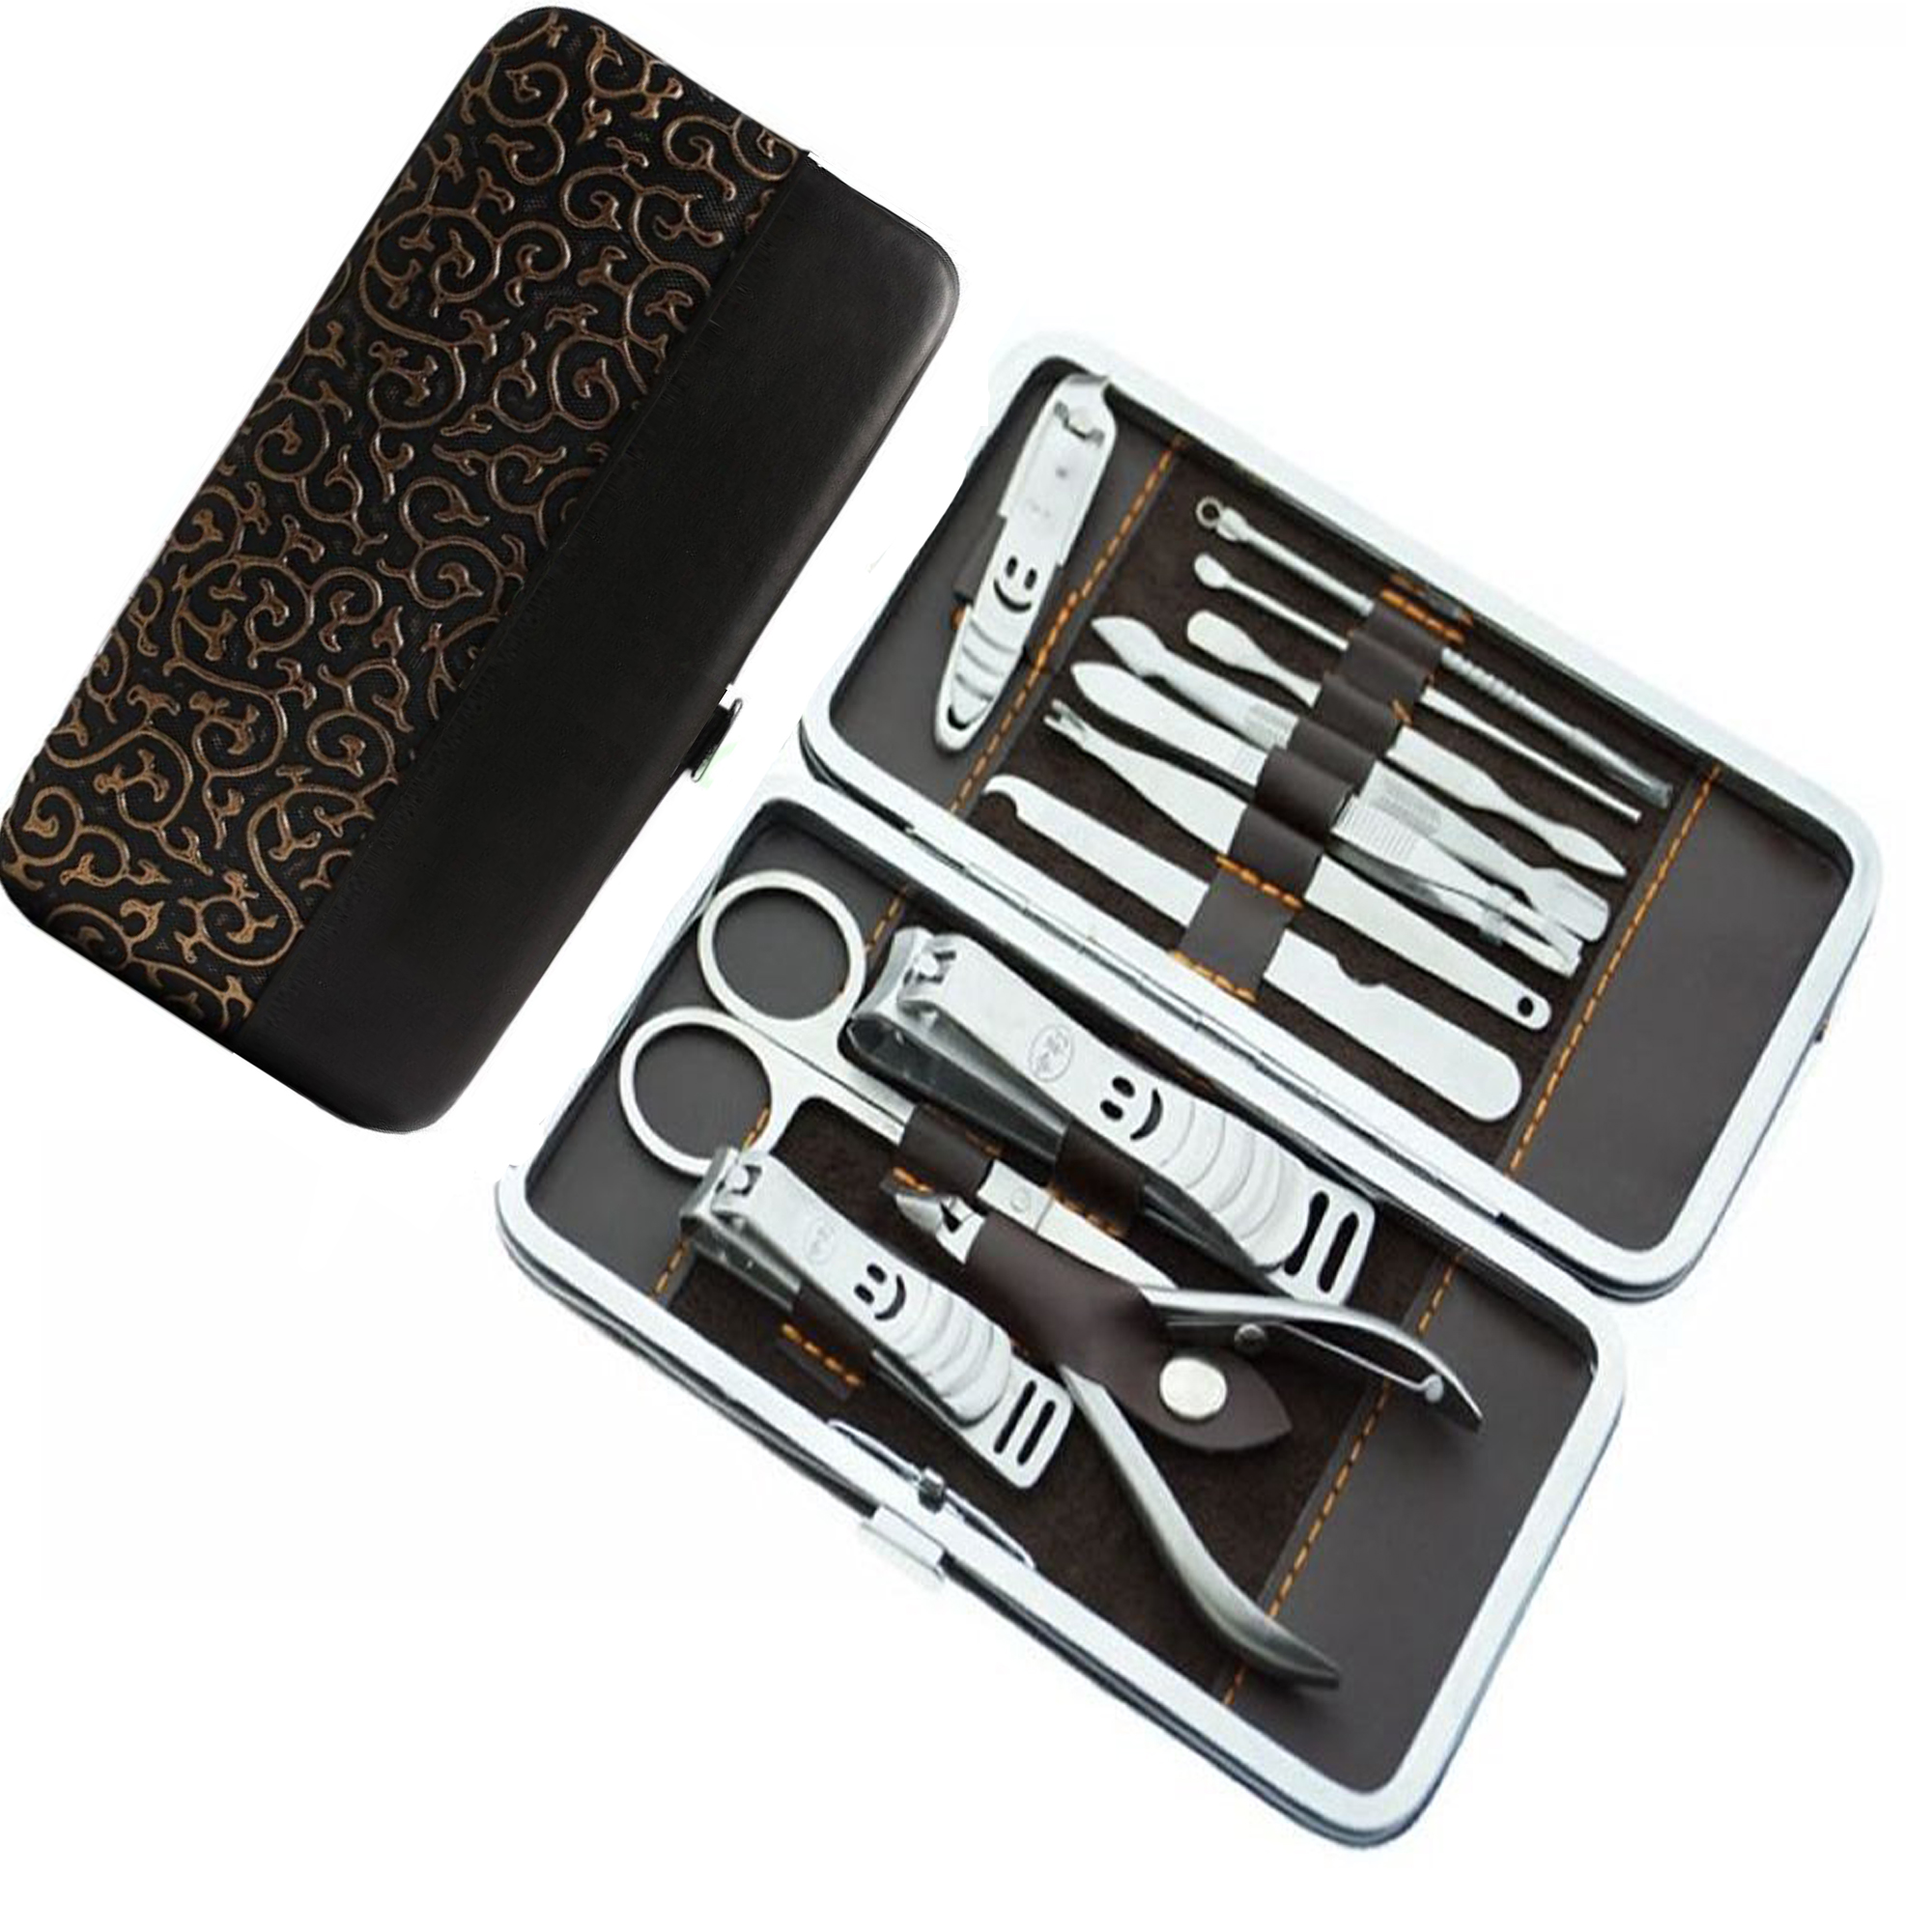 12 in 1 Stainless Steel Professional Nail Cutter Manicure Pedicure & Grooming Kits Nail Clipper Earpick Pedicure Kits for Men/Women